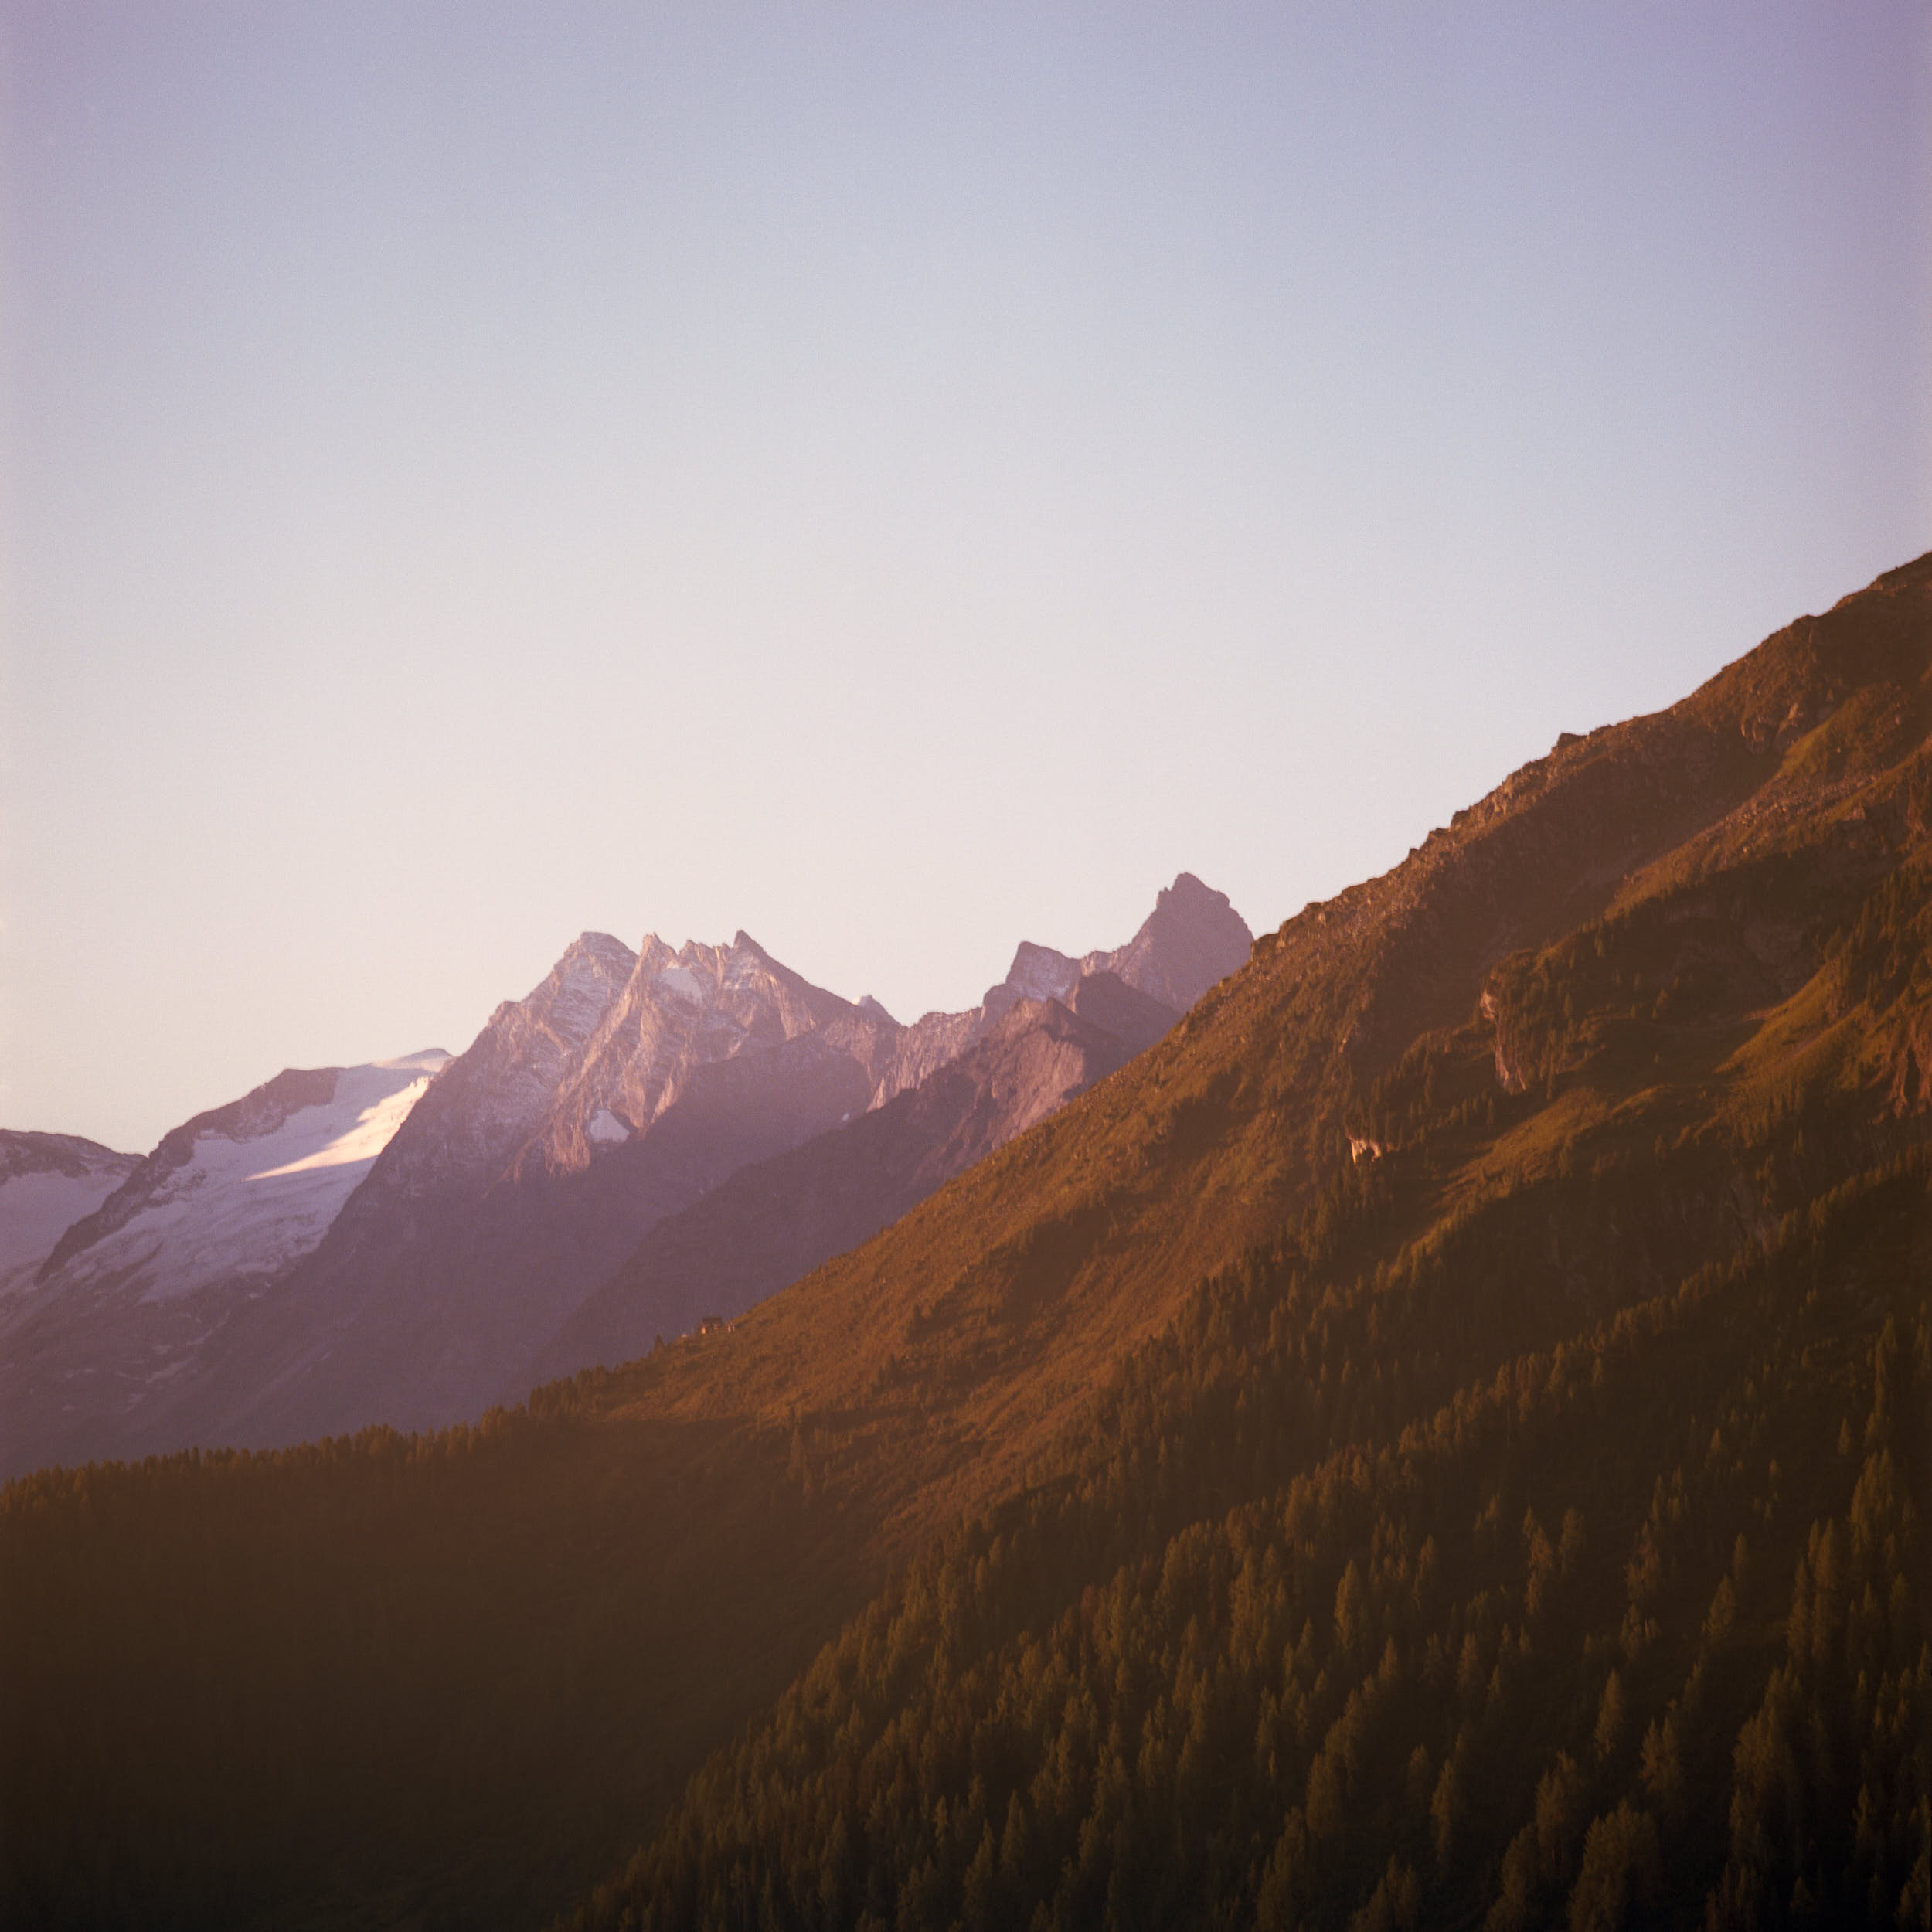 First sunlight hitting the top of alpine peaks. Shot on medium format color film.